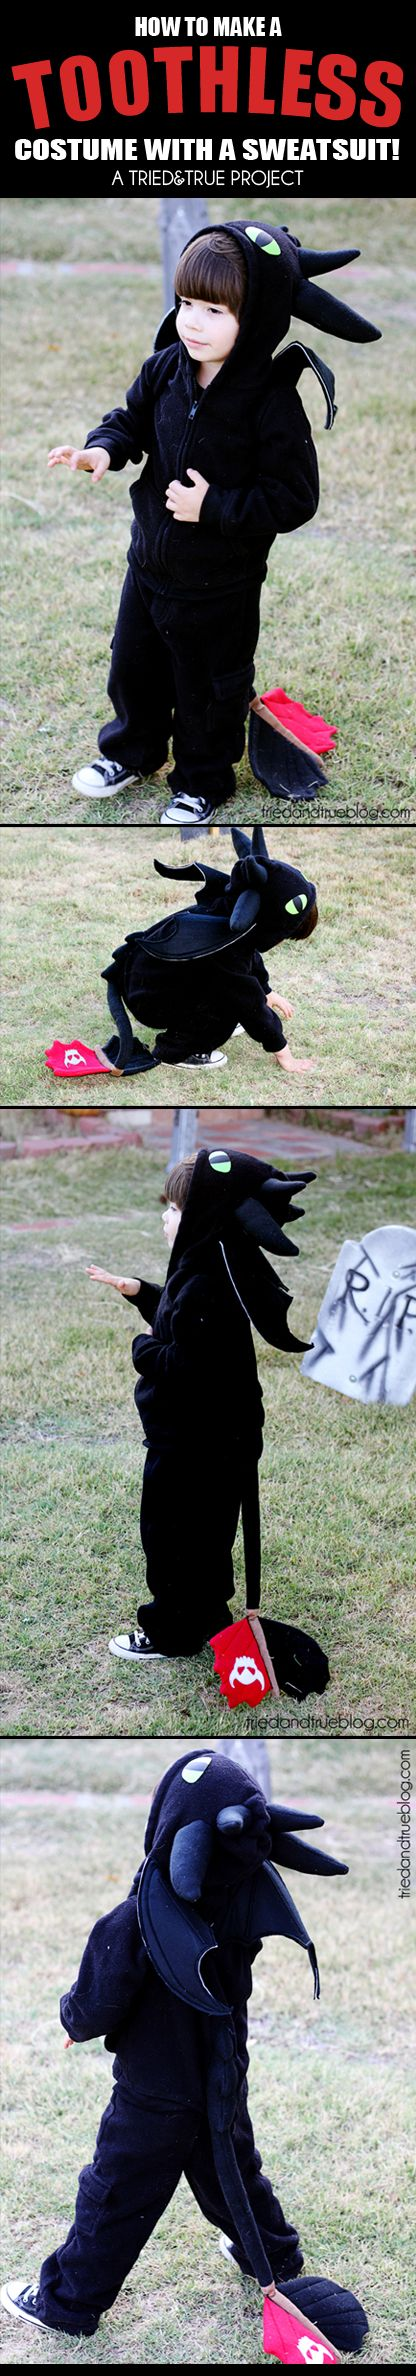 How To Make a Toothless Dragon Costume from a sweatsuit! - A Tried & True Project for Halloween